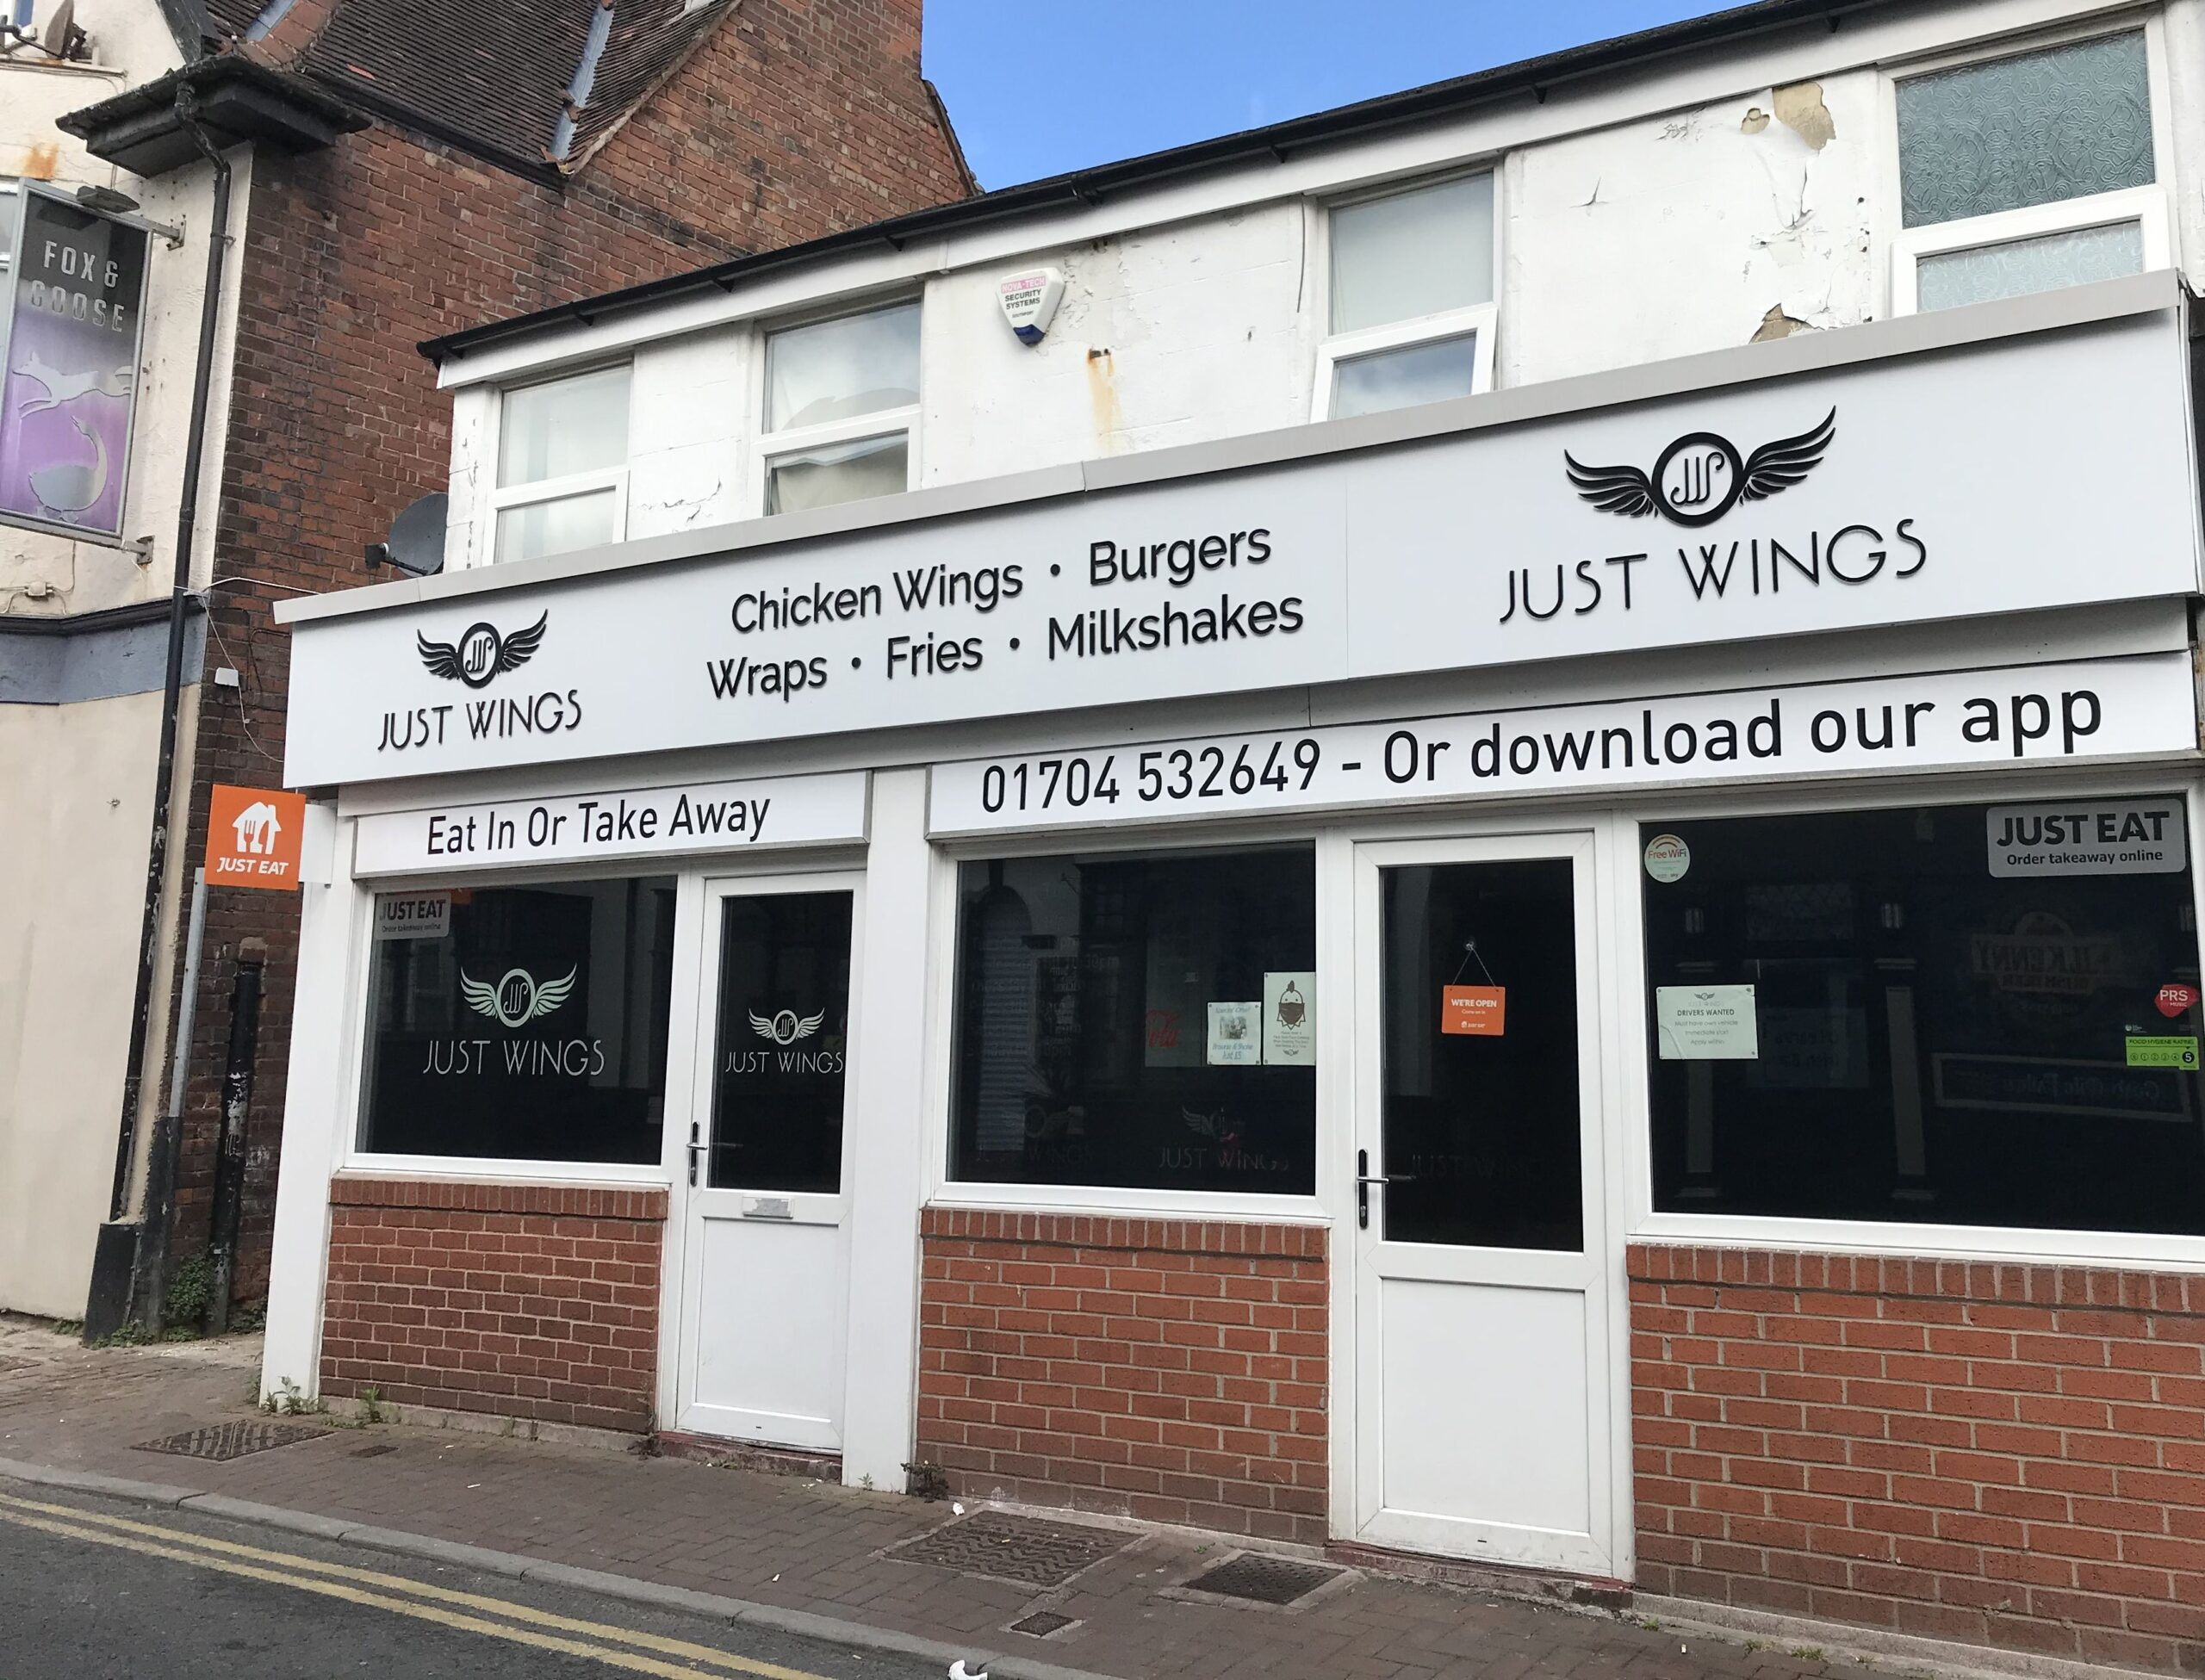 Just Wings on Cable Street in Southport. Photo by Andrew Brown Media